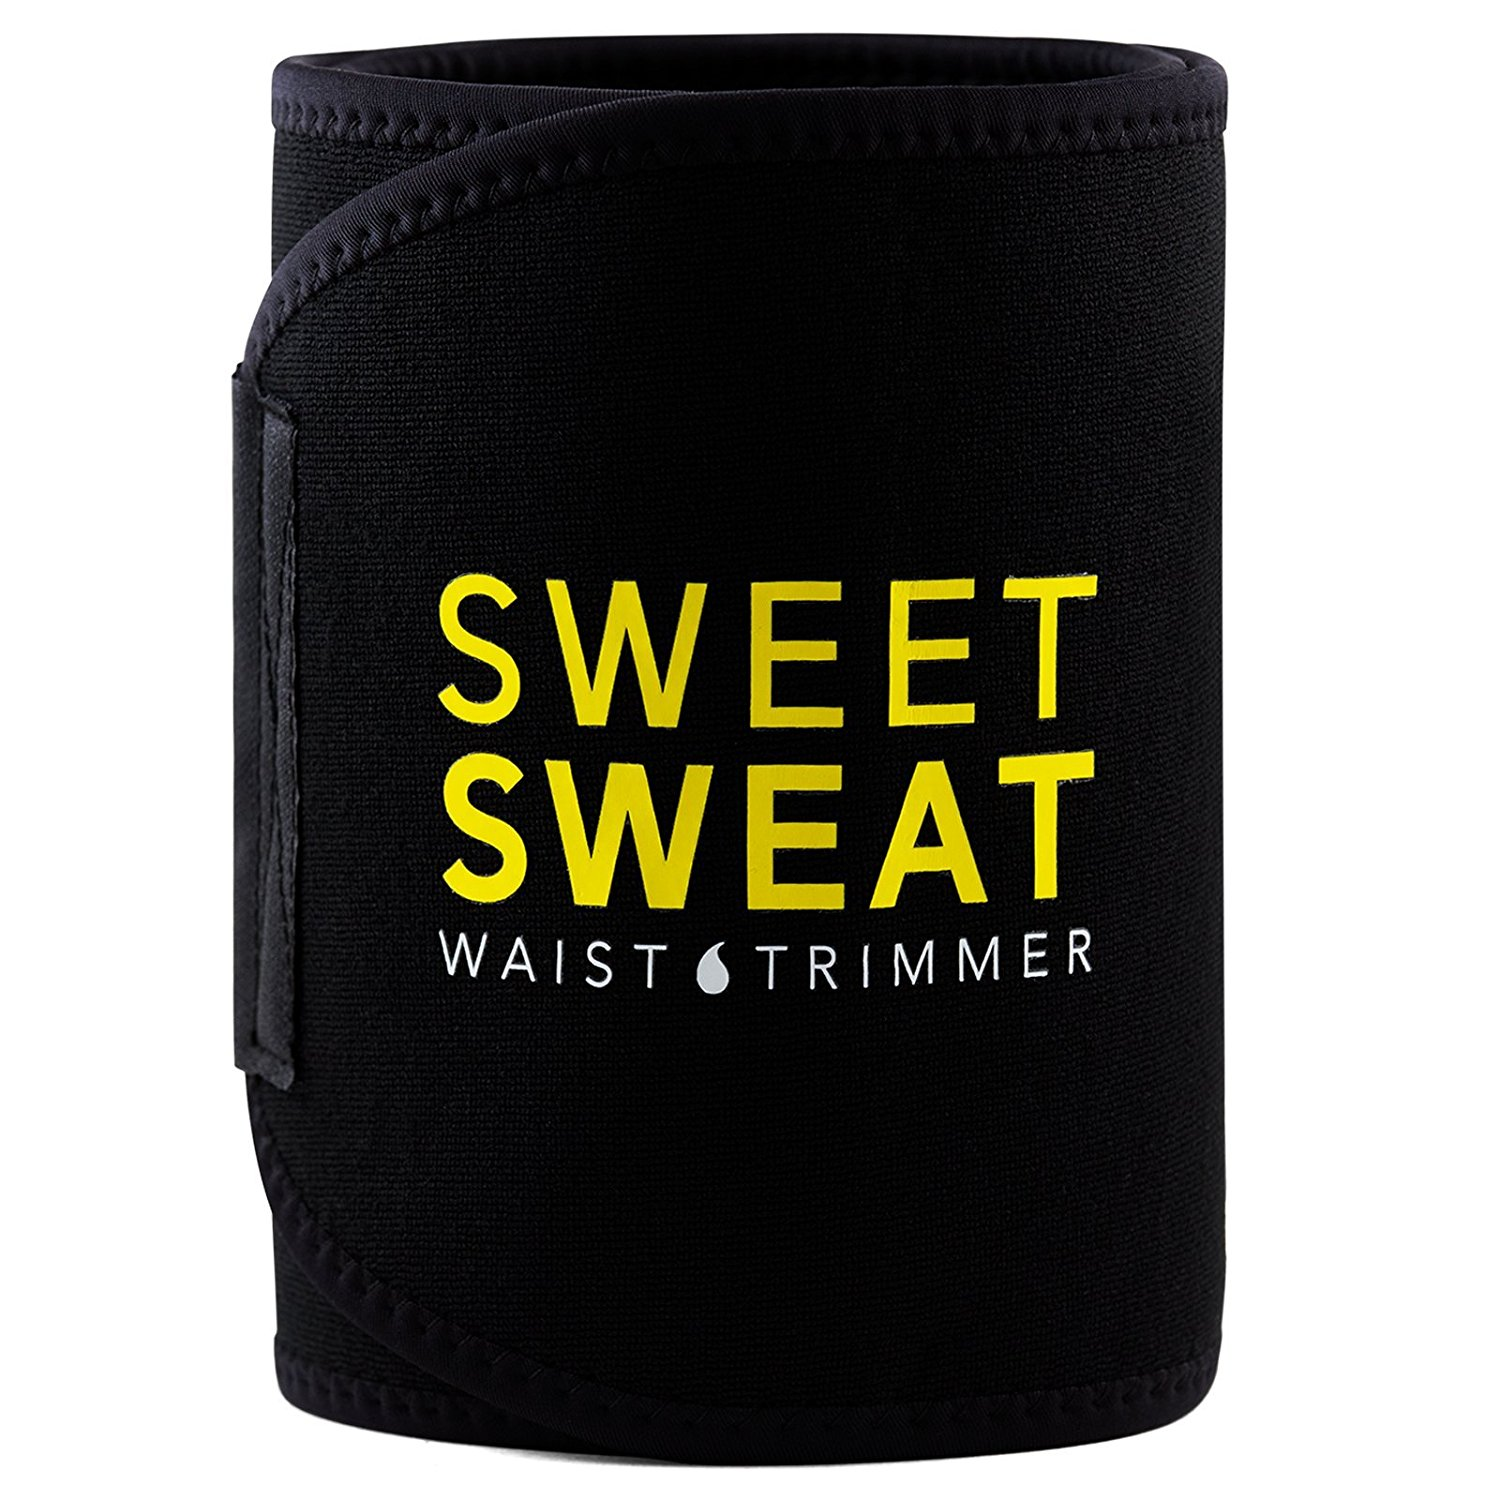 Sweet Sweat Premium Waist Trimmer, for Men & Women